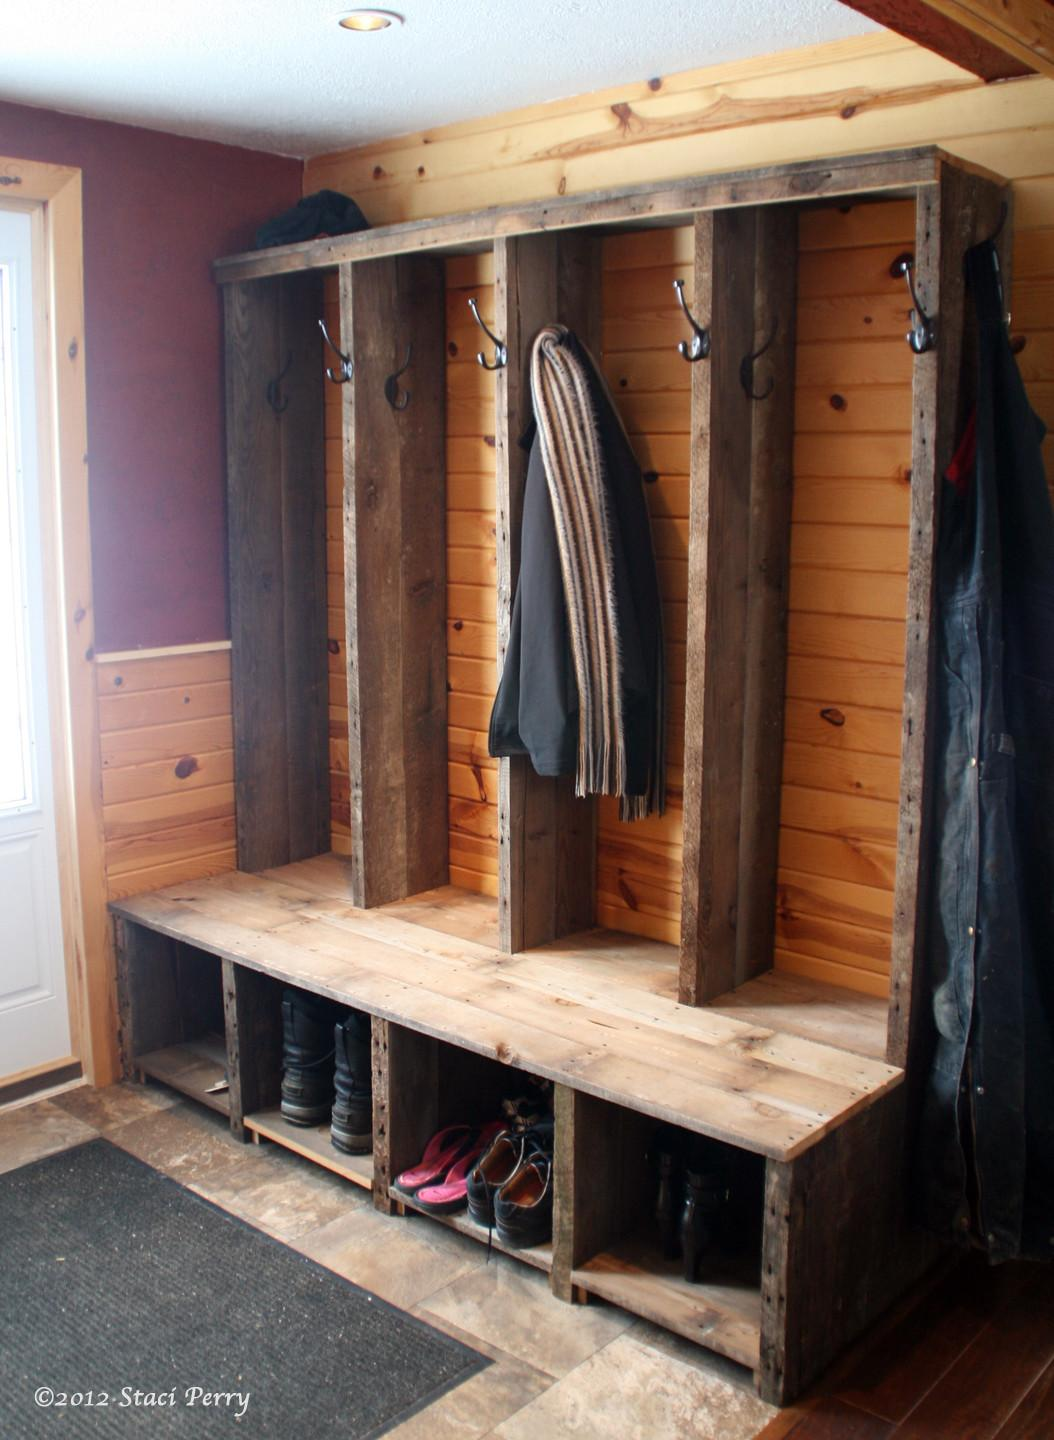 42 Unbelievable Mudroom Entryway Benches That You Have To Try Tons Of Variety Decoratorist